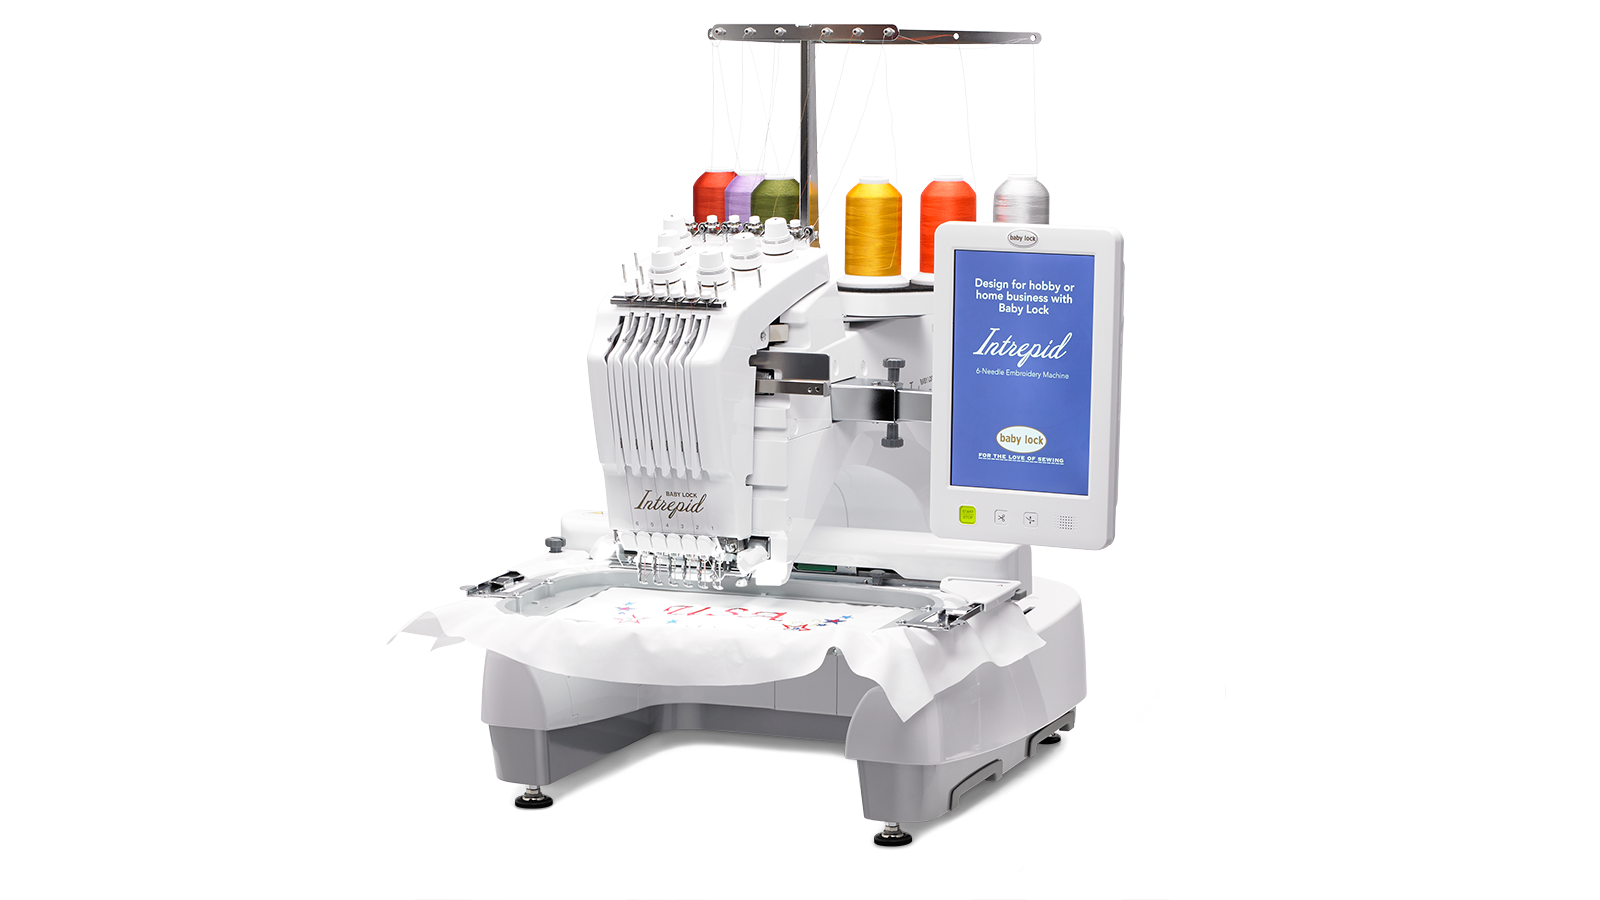 Baby Lock Intrepid Multi-Needle Embroidery Machine